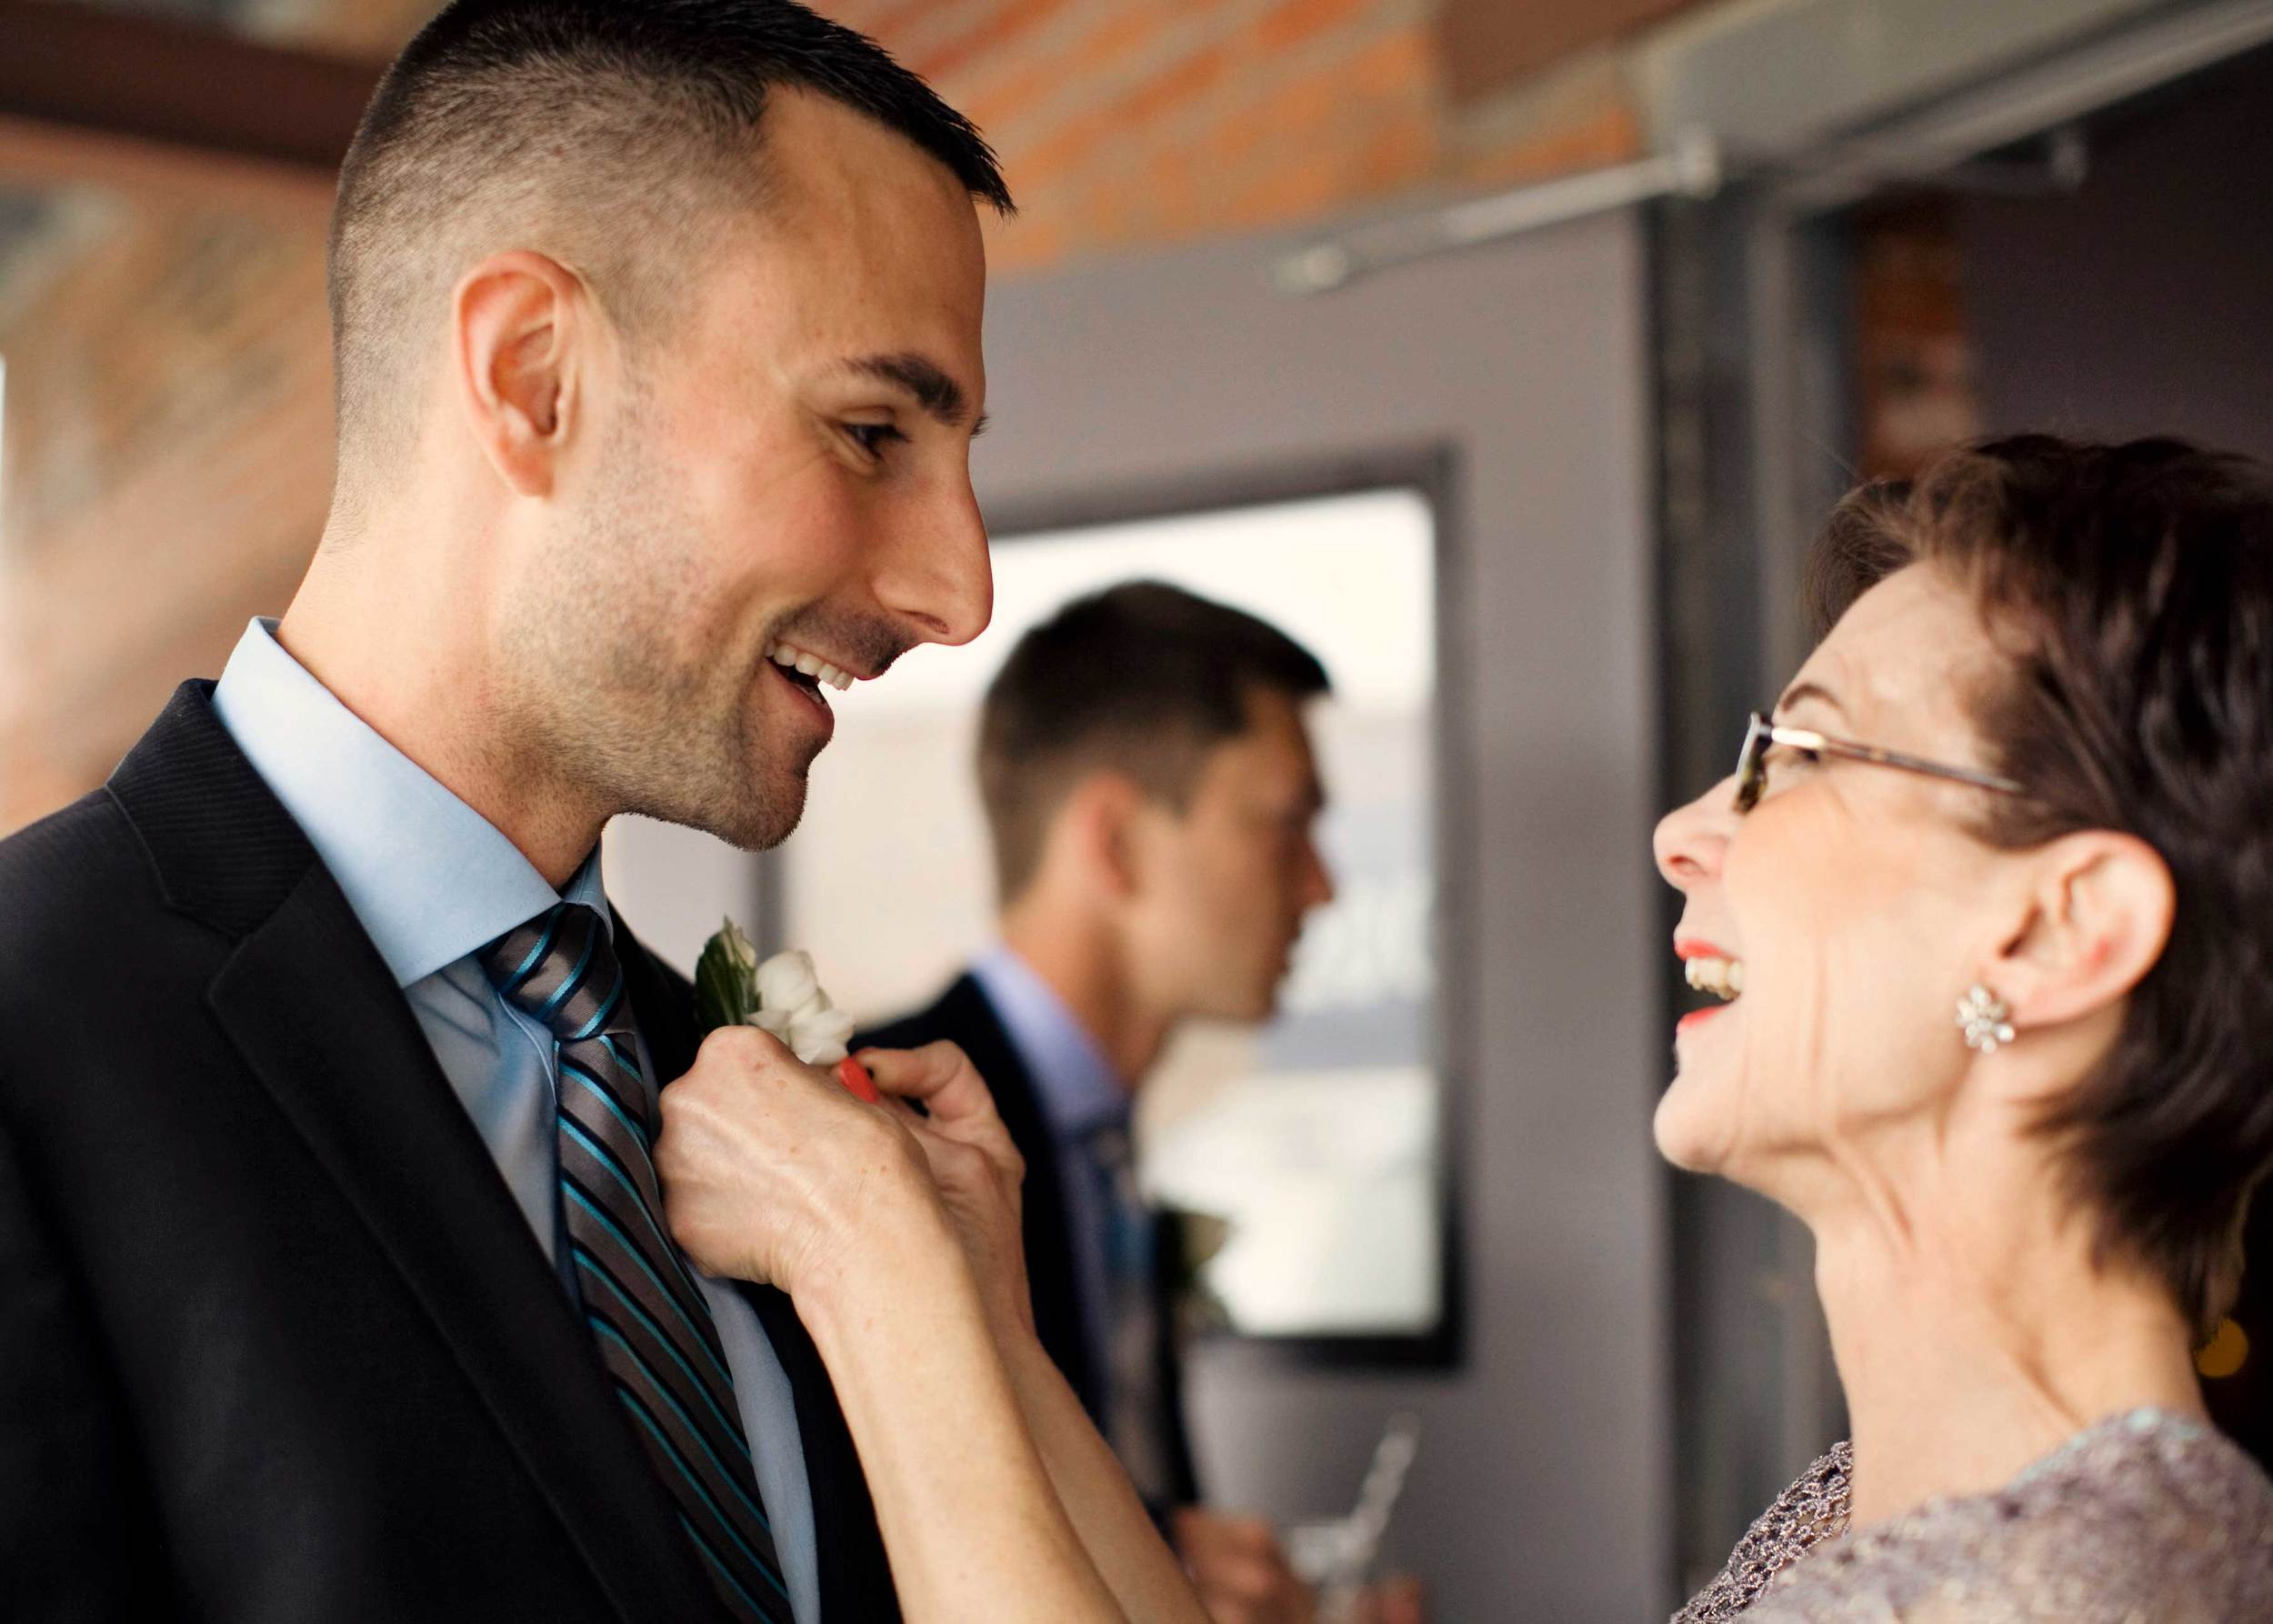 7. MOM & GROOM SHARE SMILES AS SHE PINS ON HIS BOUTONNIERE.